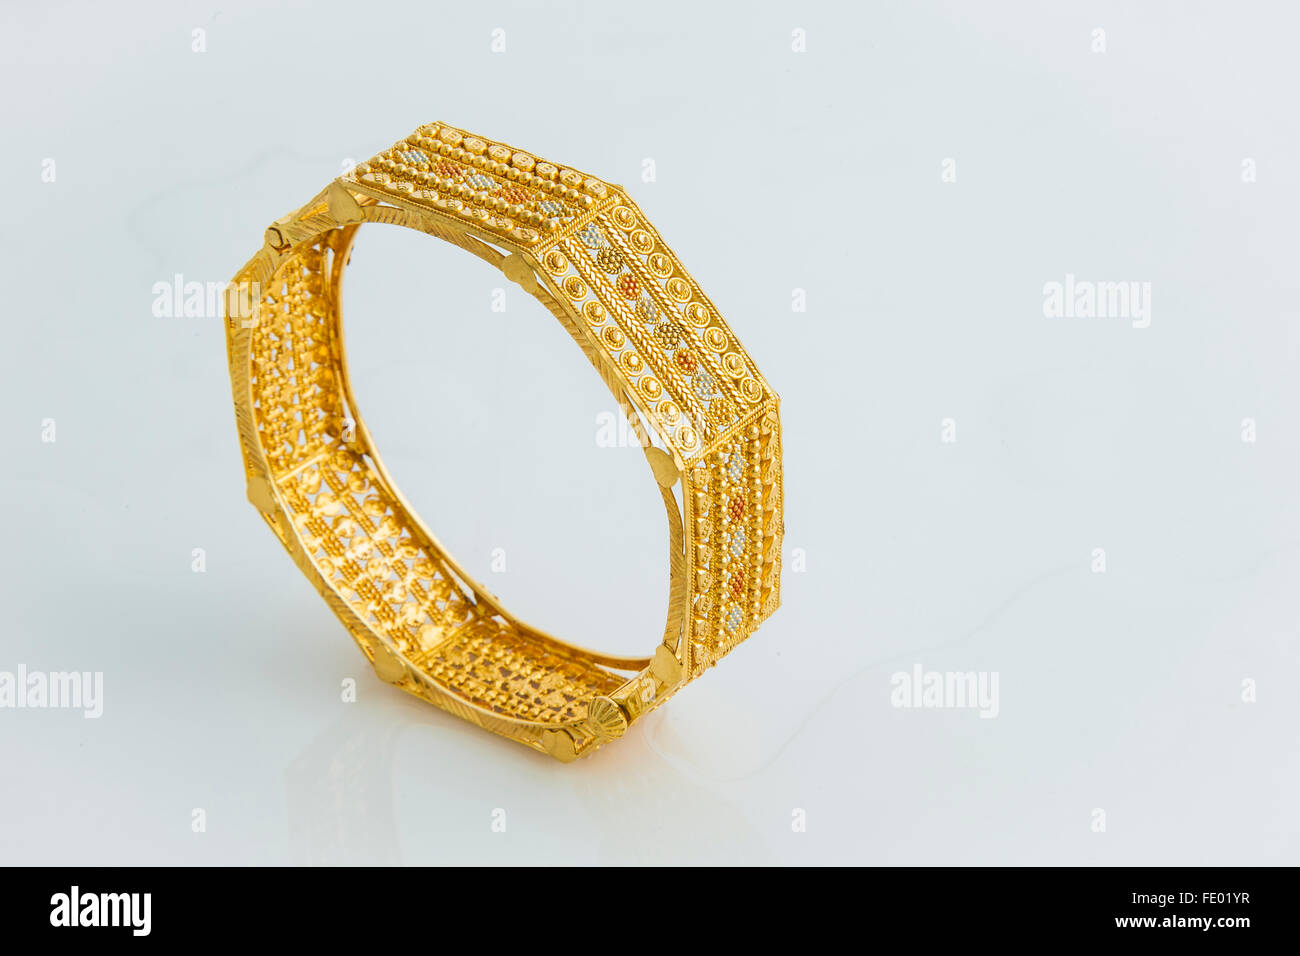 Jewelry gold ornament gold bangles gold bracelets Indian jewelry